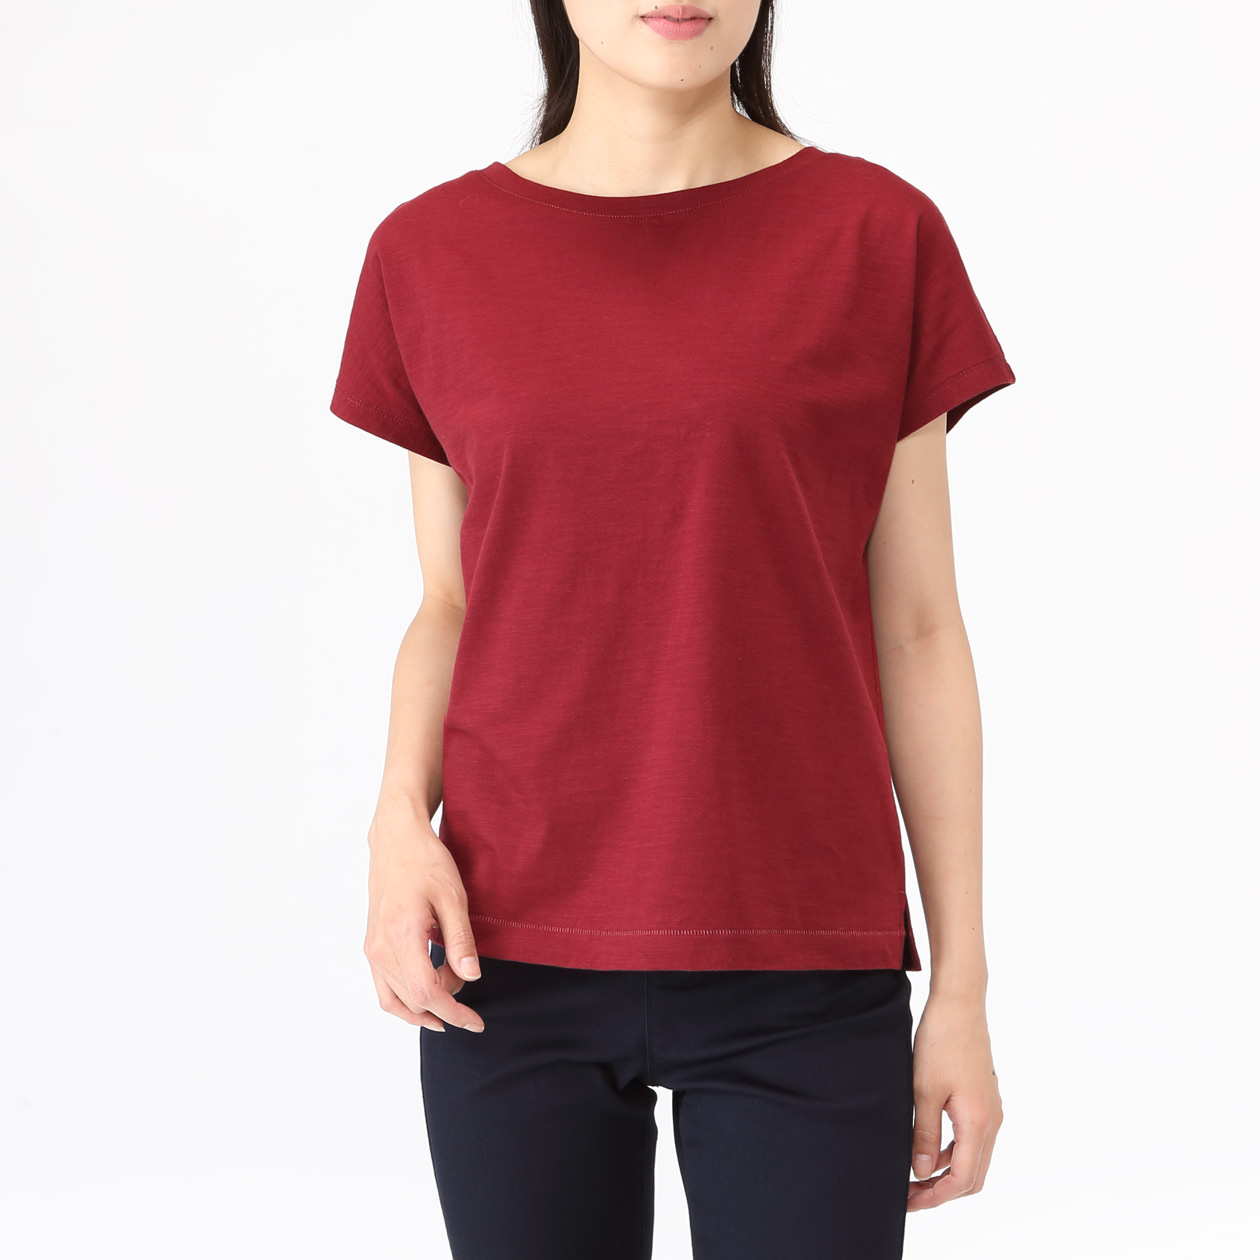 Muji Bordeaux Overseas Limited Ogc Uneven Yarn French Sleeve T Shirt Lady Xl